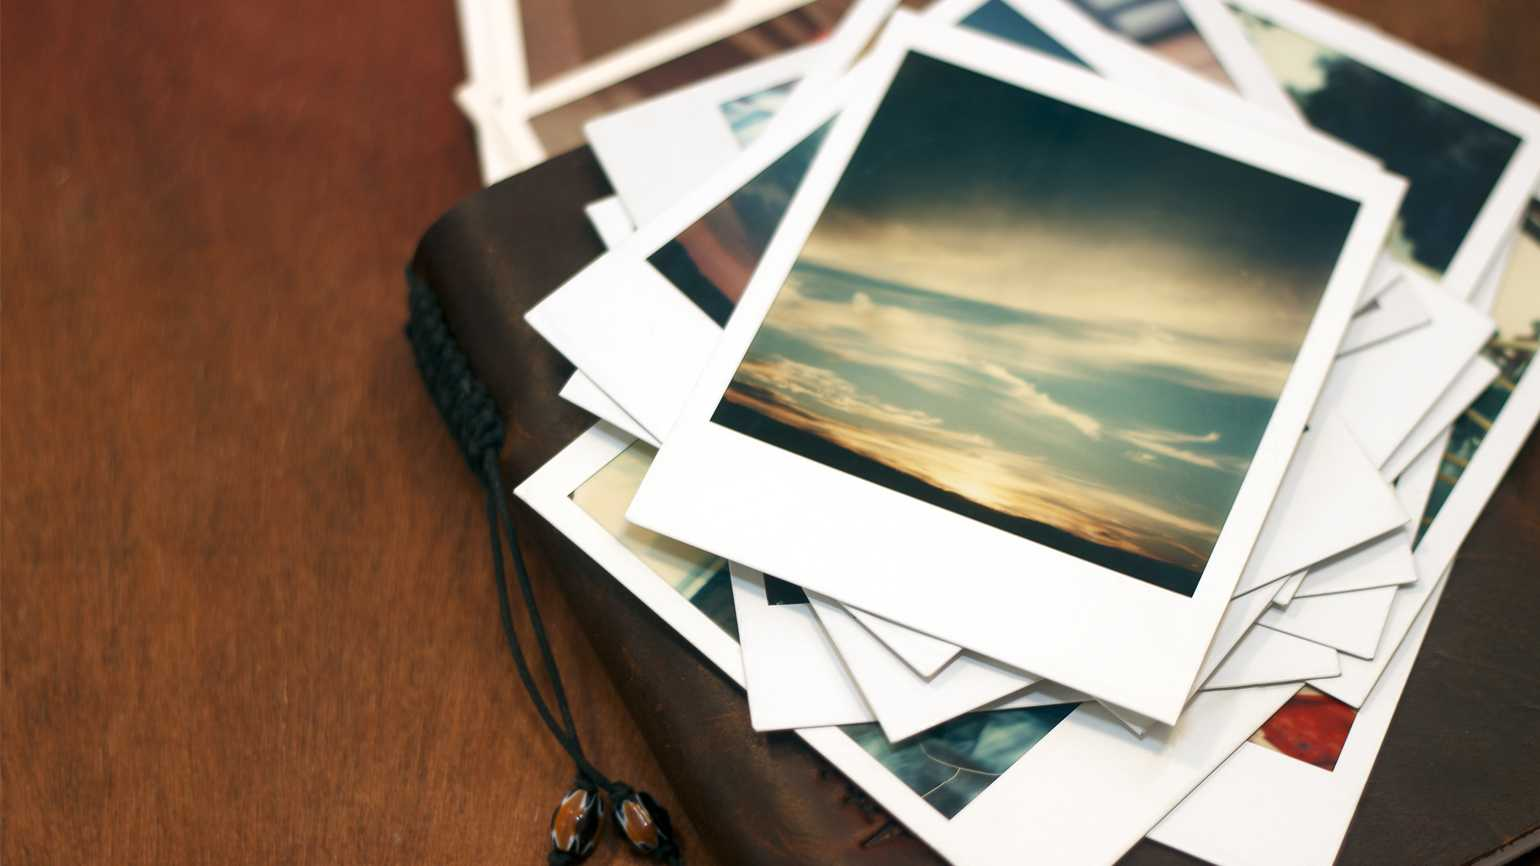 Polaroid pictures of a sunset piled on top of a leather journal.